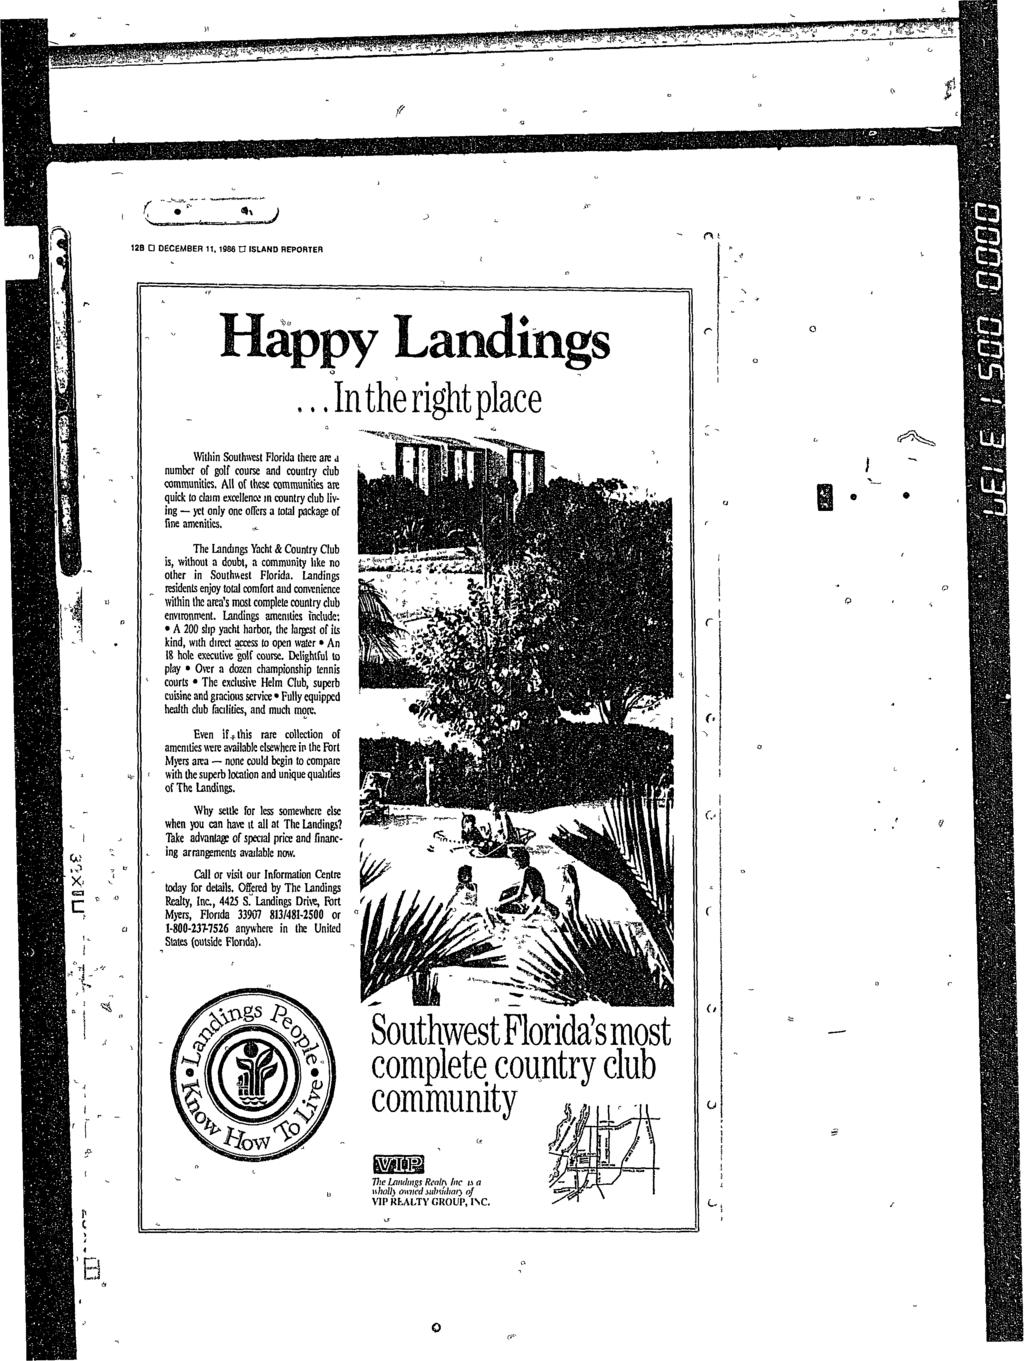 """ a 1' i SJ -S-i'- /? ( > "" J 12B D DECEMBER 11,1986 tj ISLAND REPORTER Happy Landings...In the right place Witliin Southwest Florida there are a number of golf course and country ciub communities."